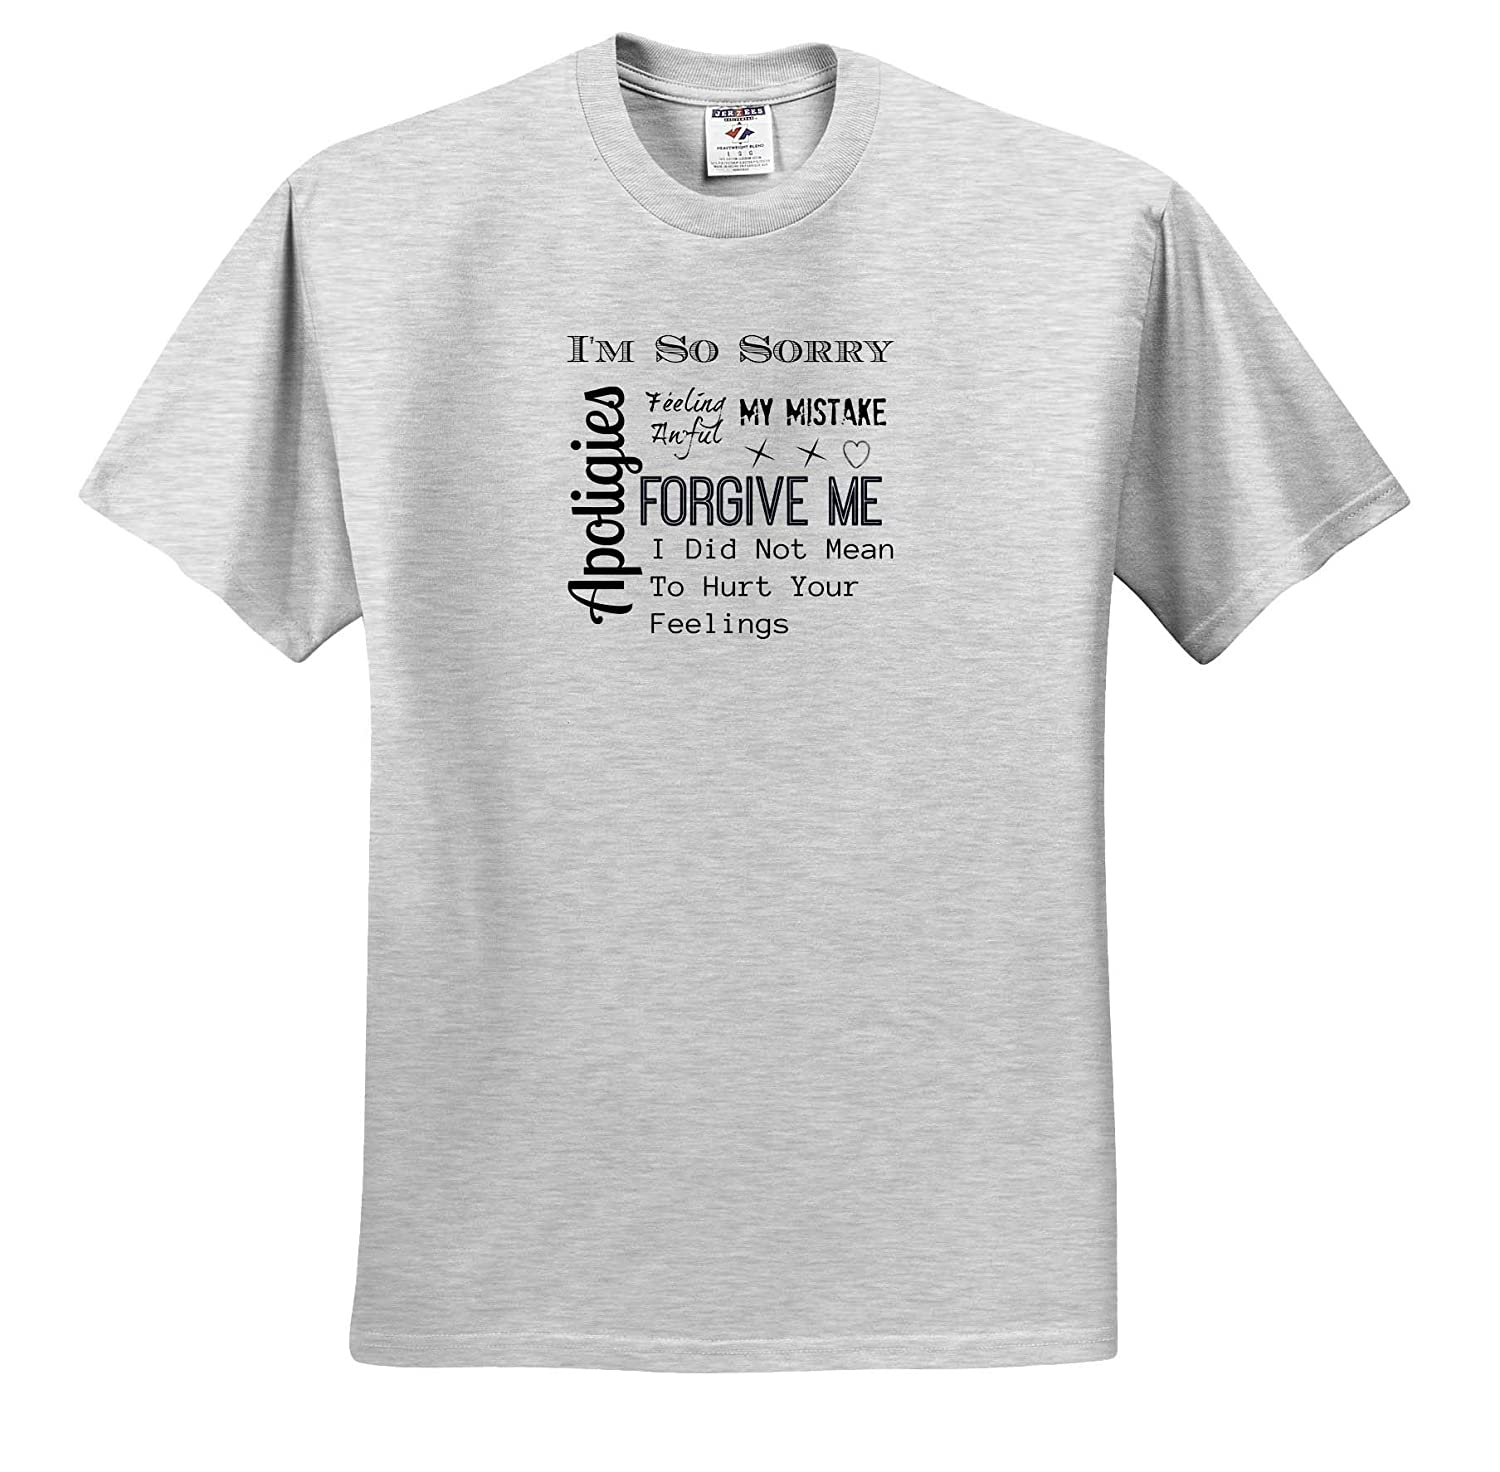 3dRose Carrie Merchant Image of Apologies Forgive Me Im Sorry I Hurt Your Feelings ts/_309859 Adult T-Shirt XL